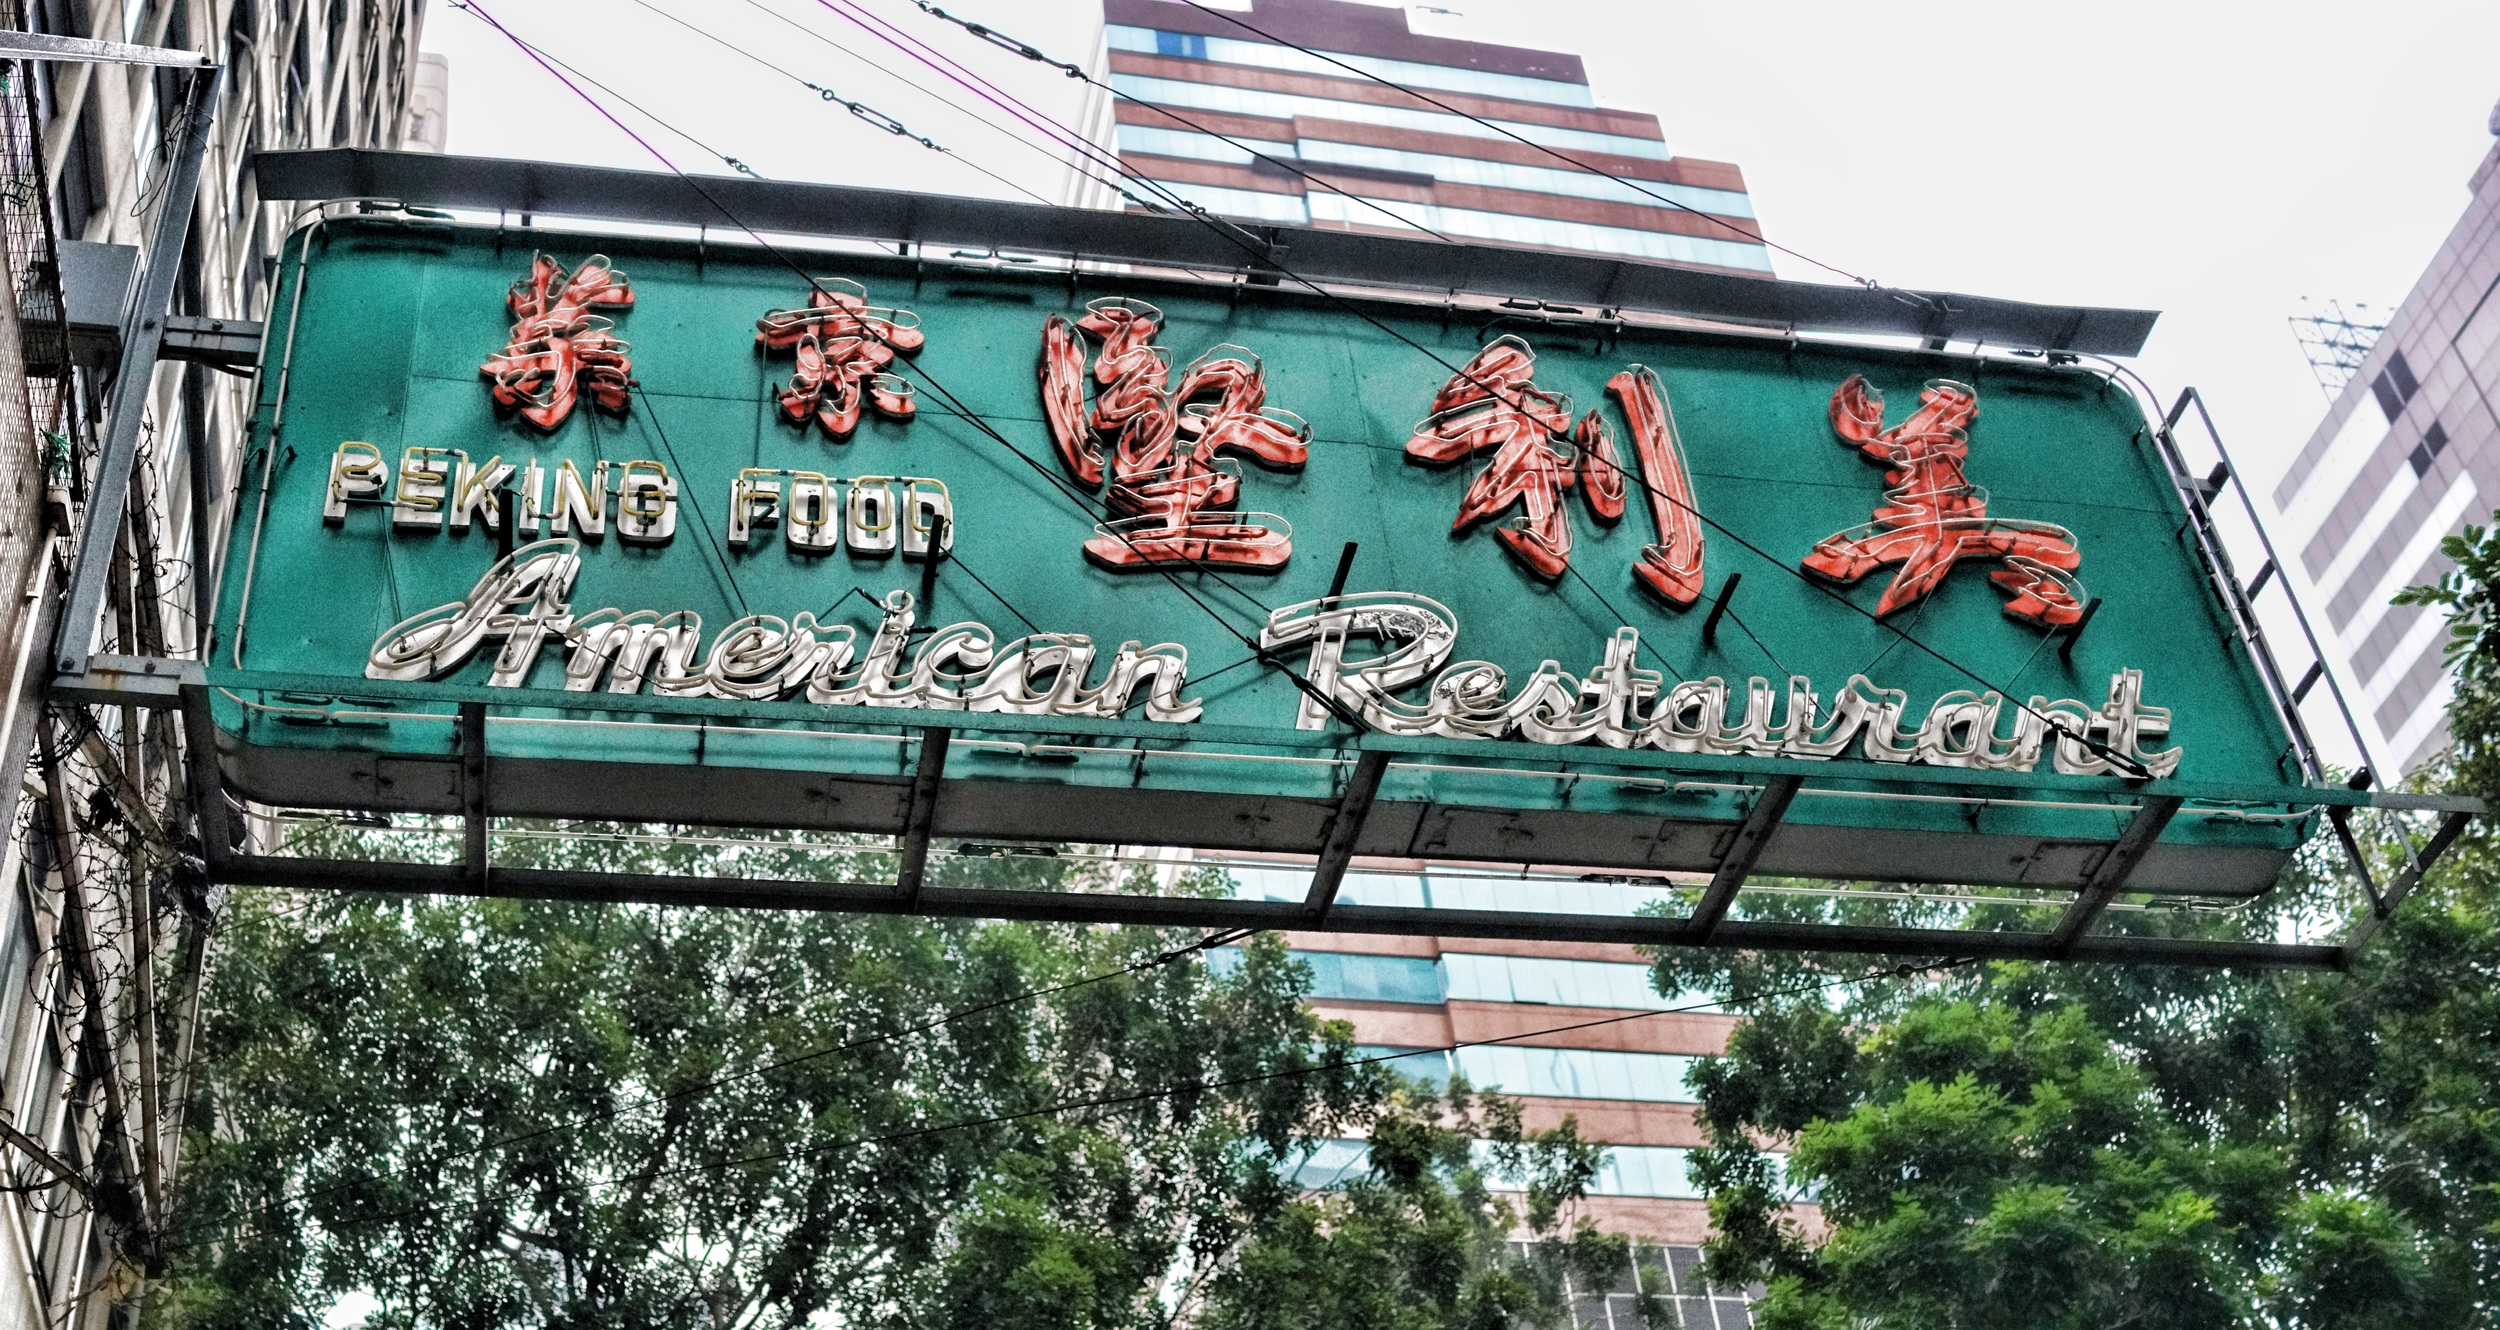 The American Restaurant sign in Wanchai on Hong Kong Island, I love this place!   UPDATE, the restaurant closed in mid 2018